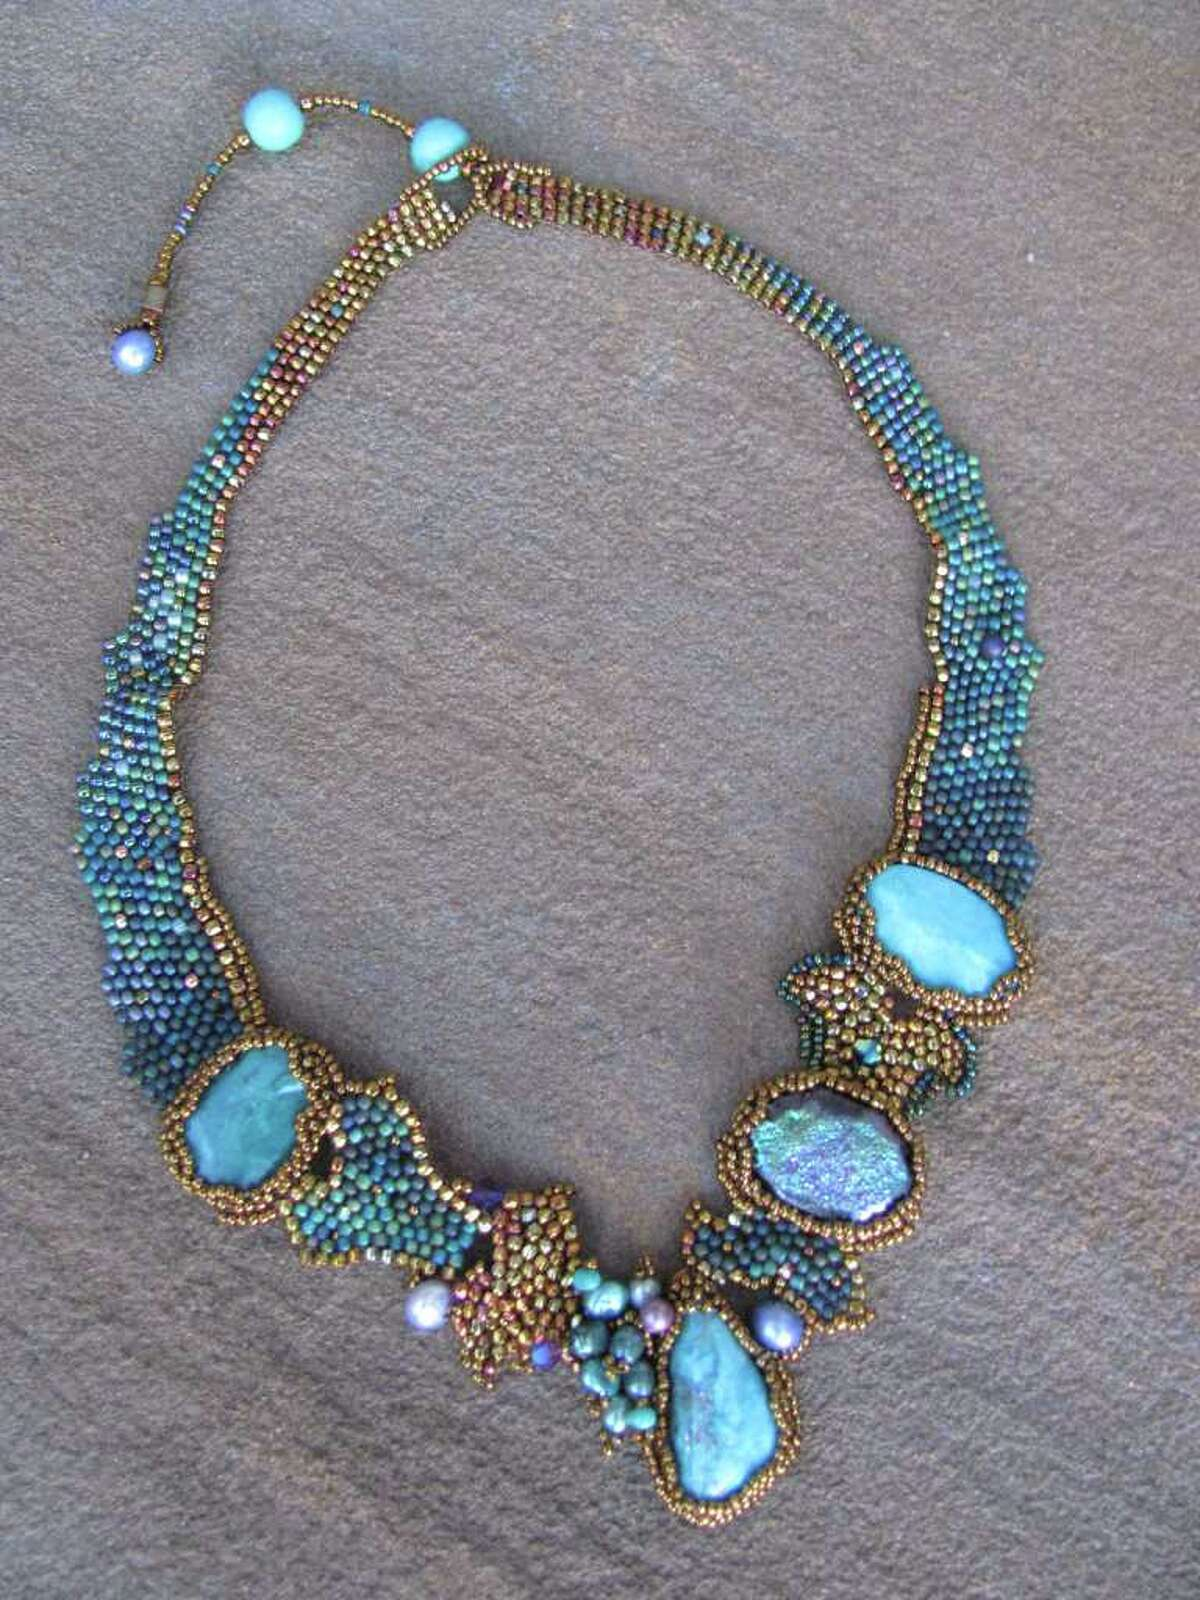 Southern Skies woven necklace by Amolia Willowsong, shown in Gallery of the Mountains in Asheville, N.C.